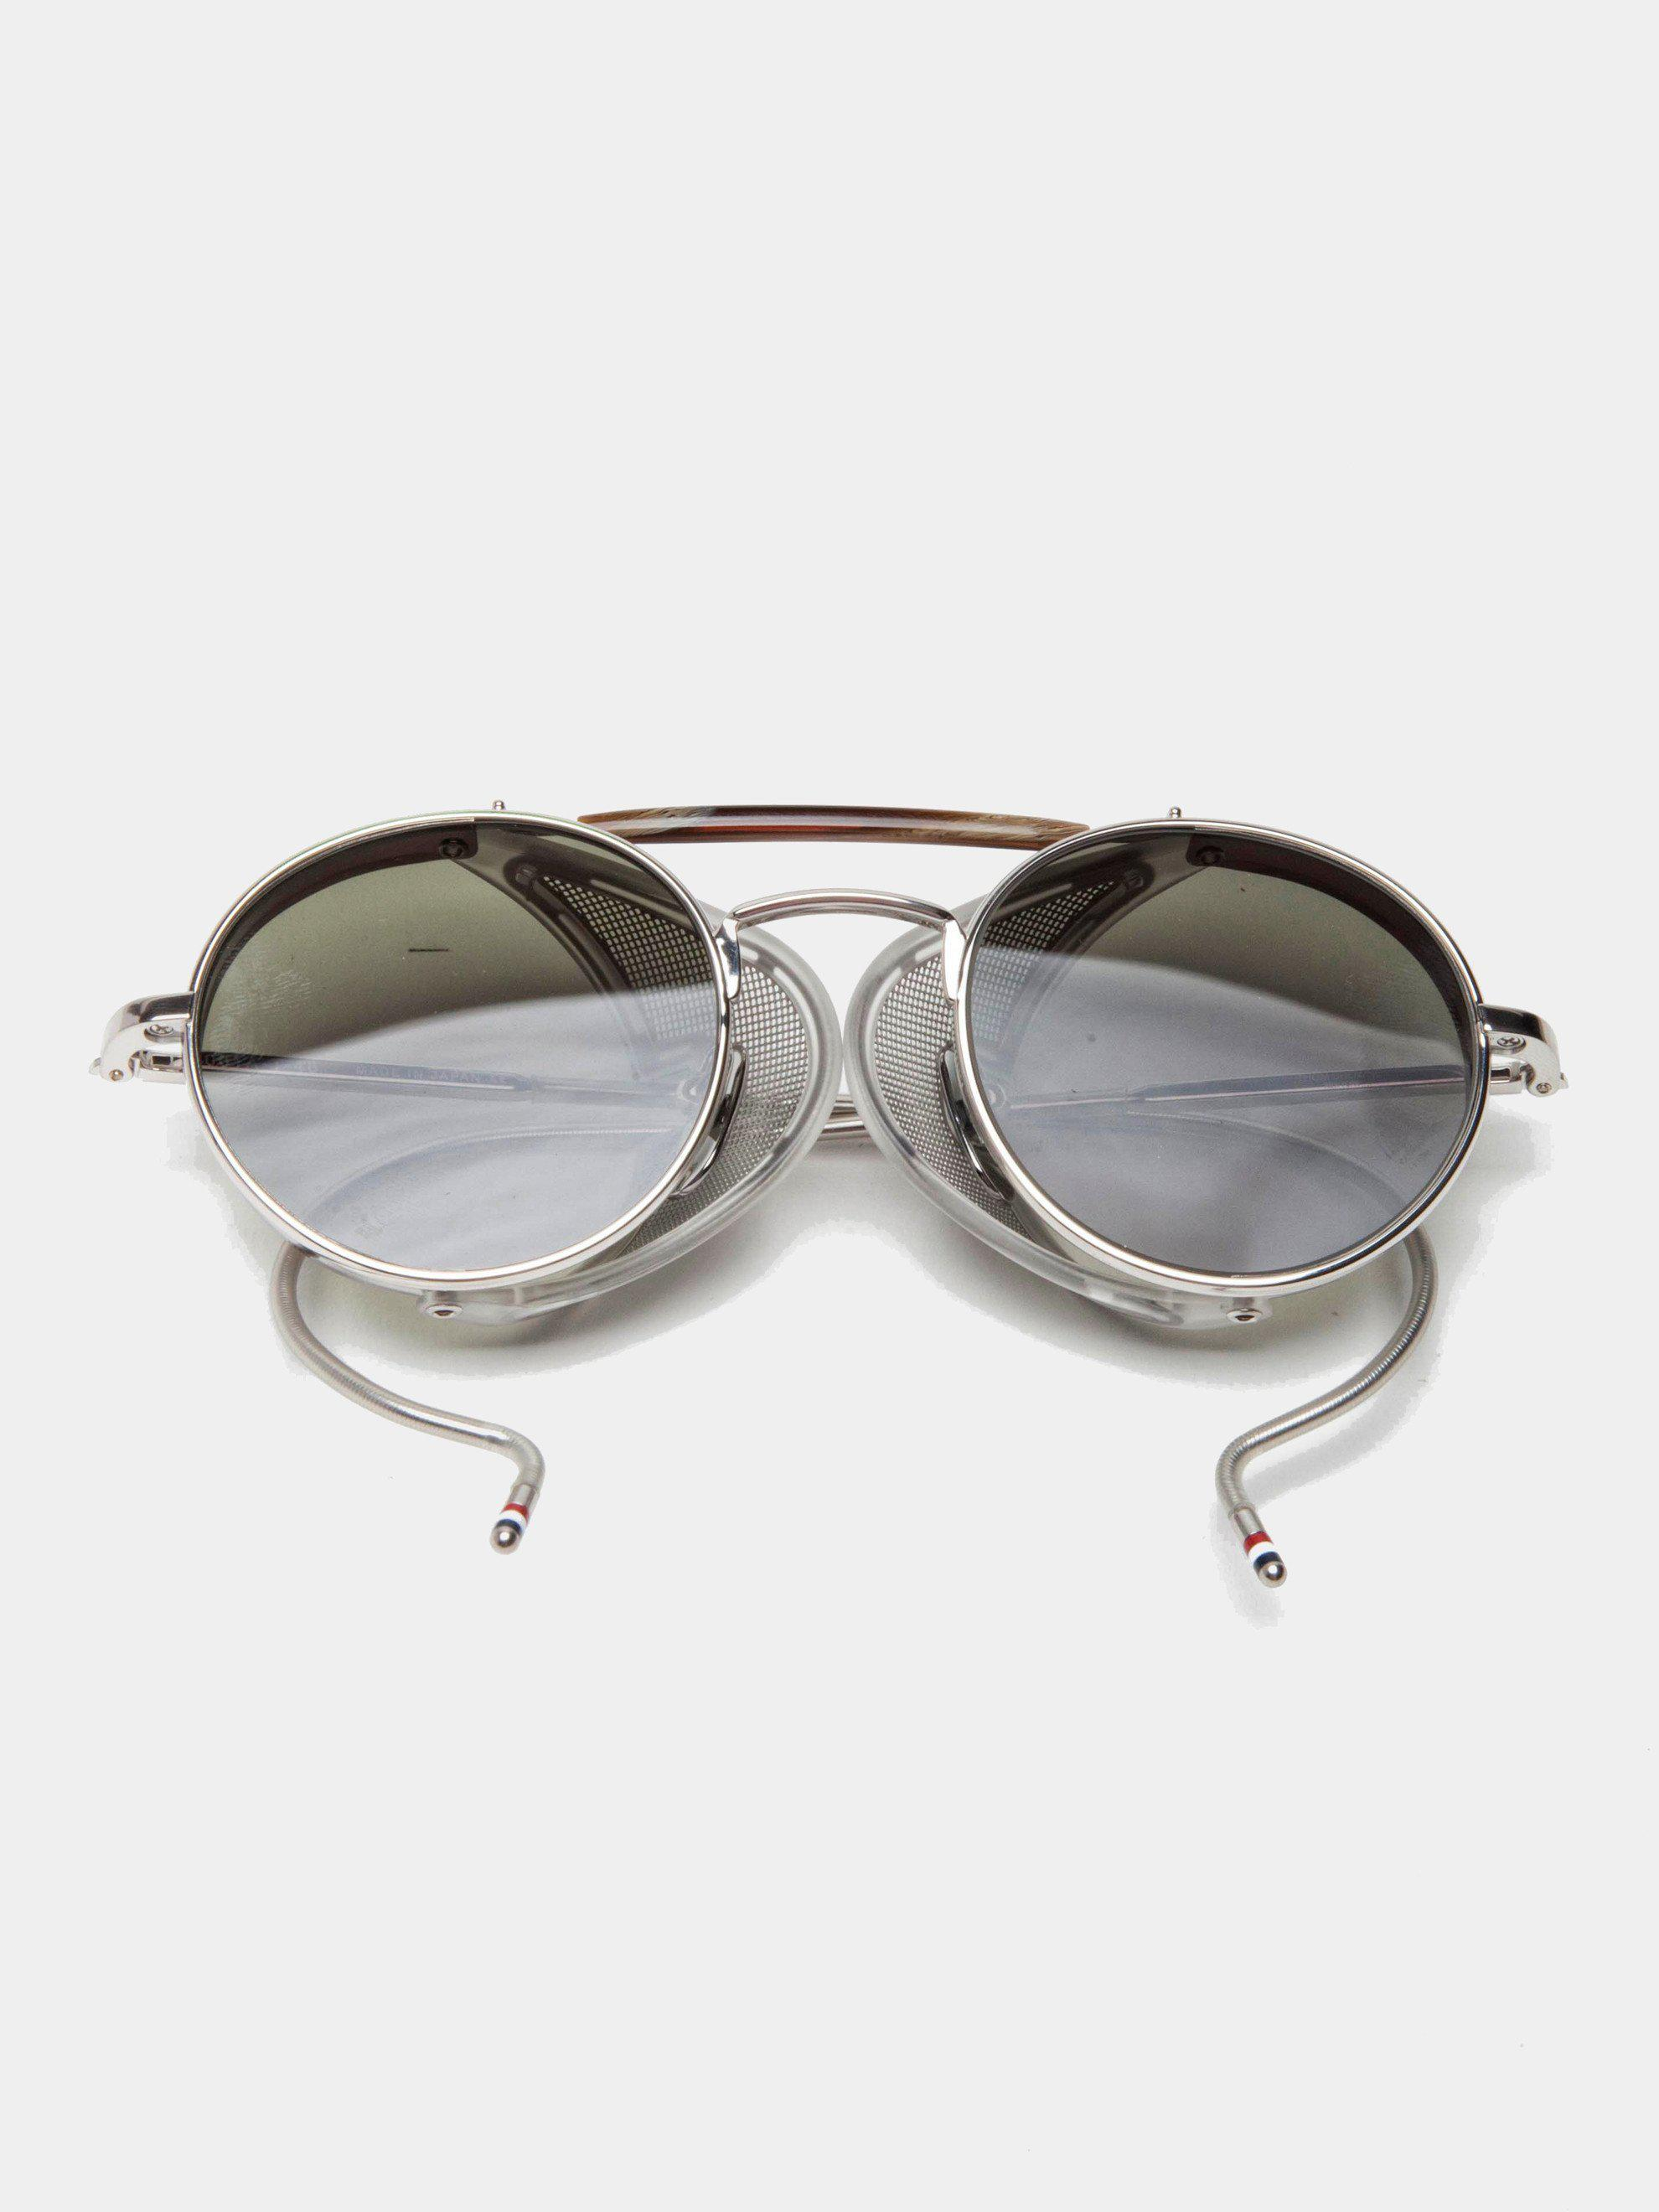 197ade64802 Lyst - Thom Browne Tb-001 (shiny Silver g-15) in Metallic for Men